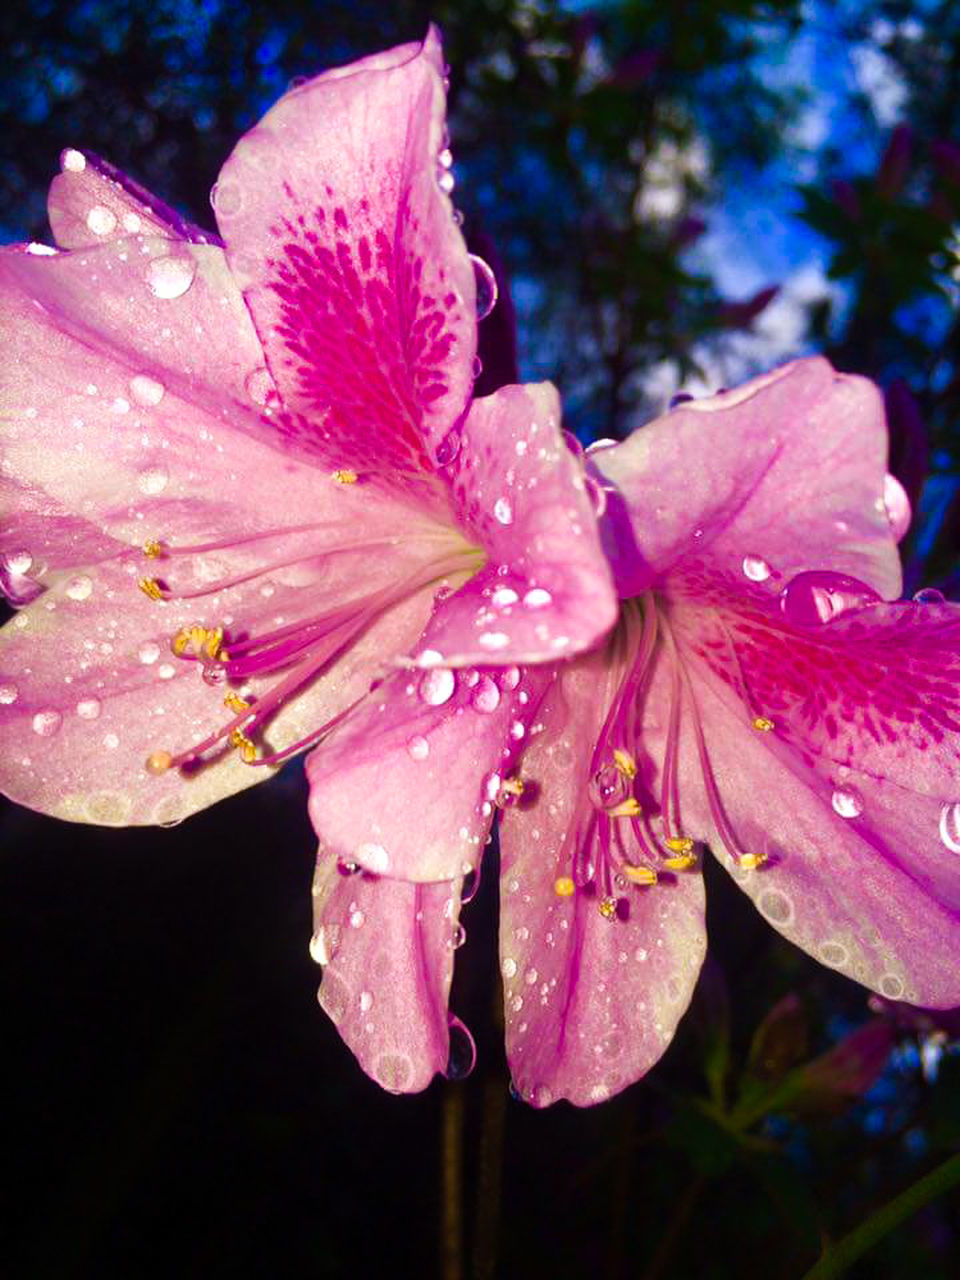 drop, flower, nature, fragility, water, petal, growth, beauty in nature, wet, freshness, close-up, no people, flower head, pink color, outdoors, day, springtime, raindrop, plant, day lily